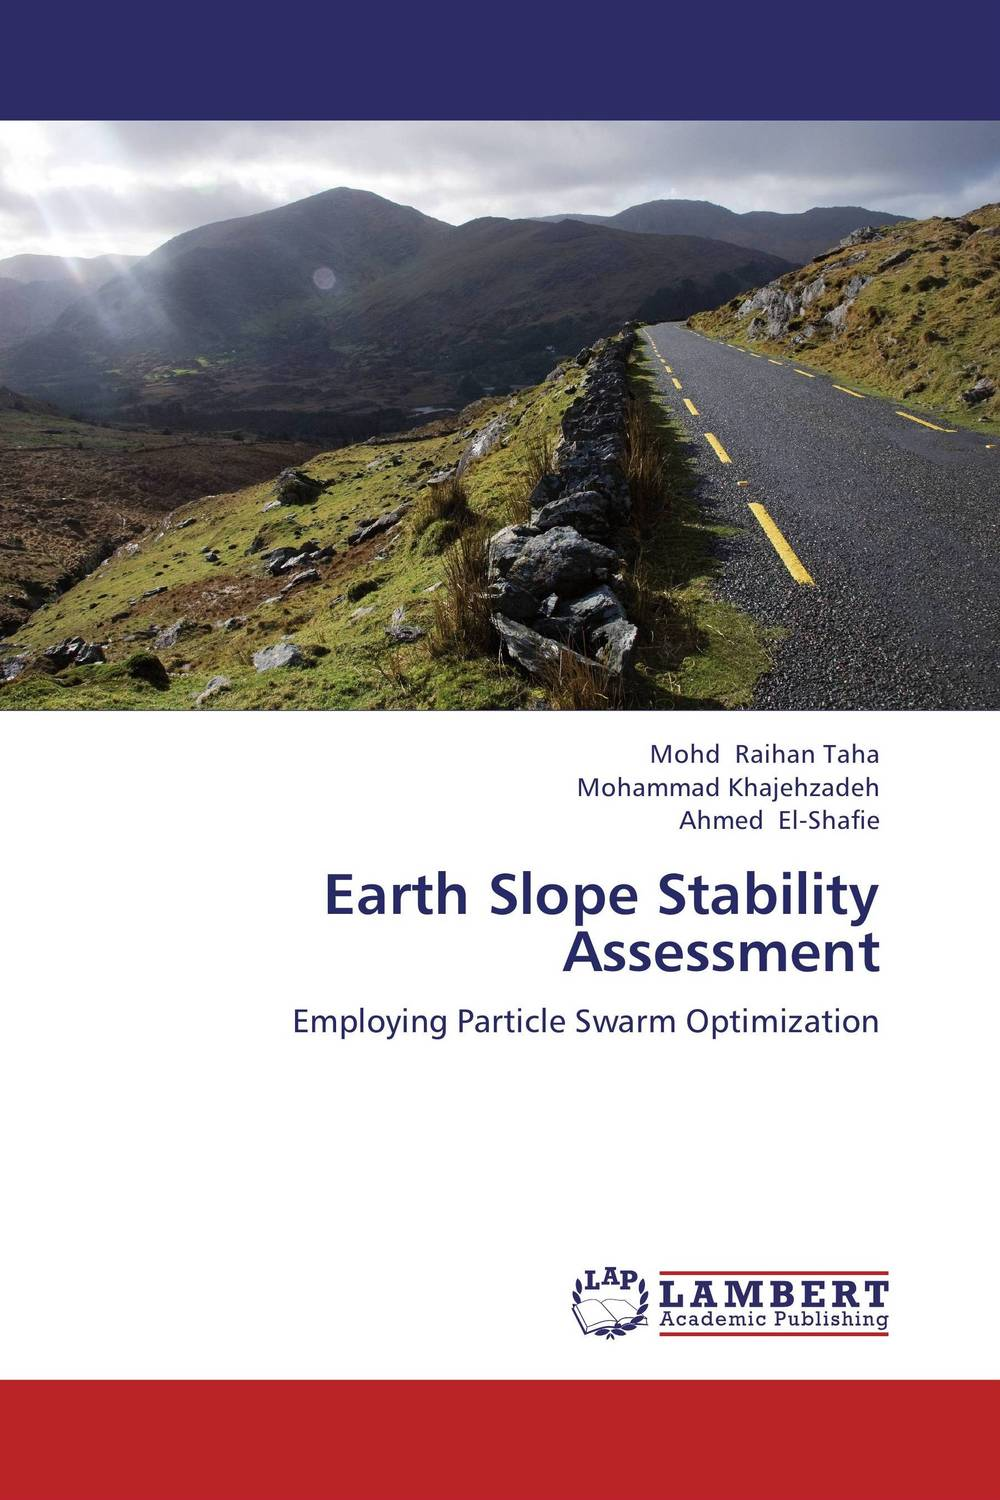 Earth Slope Stability Assessment